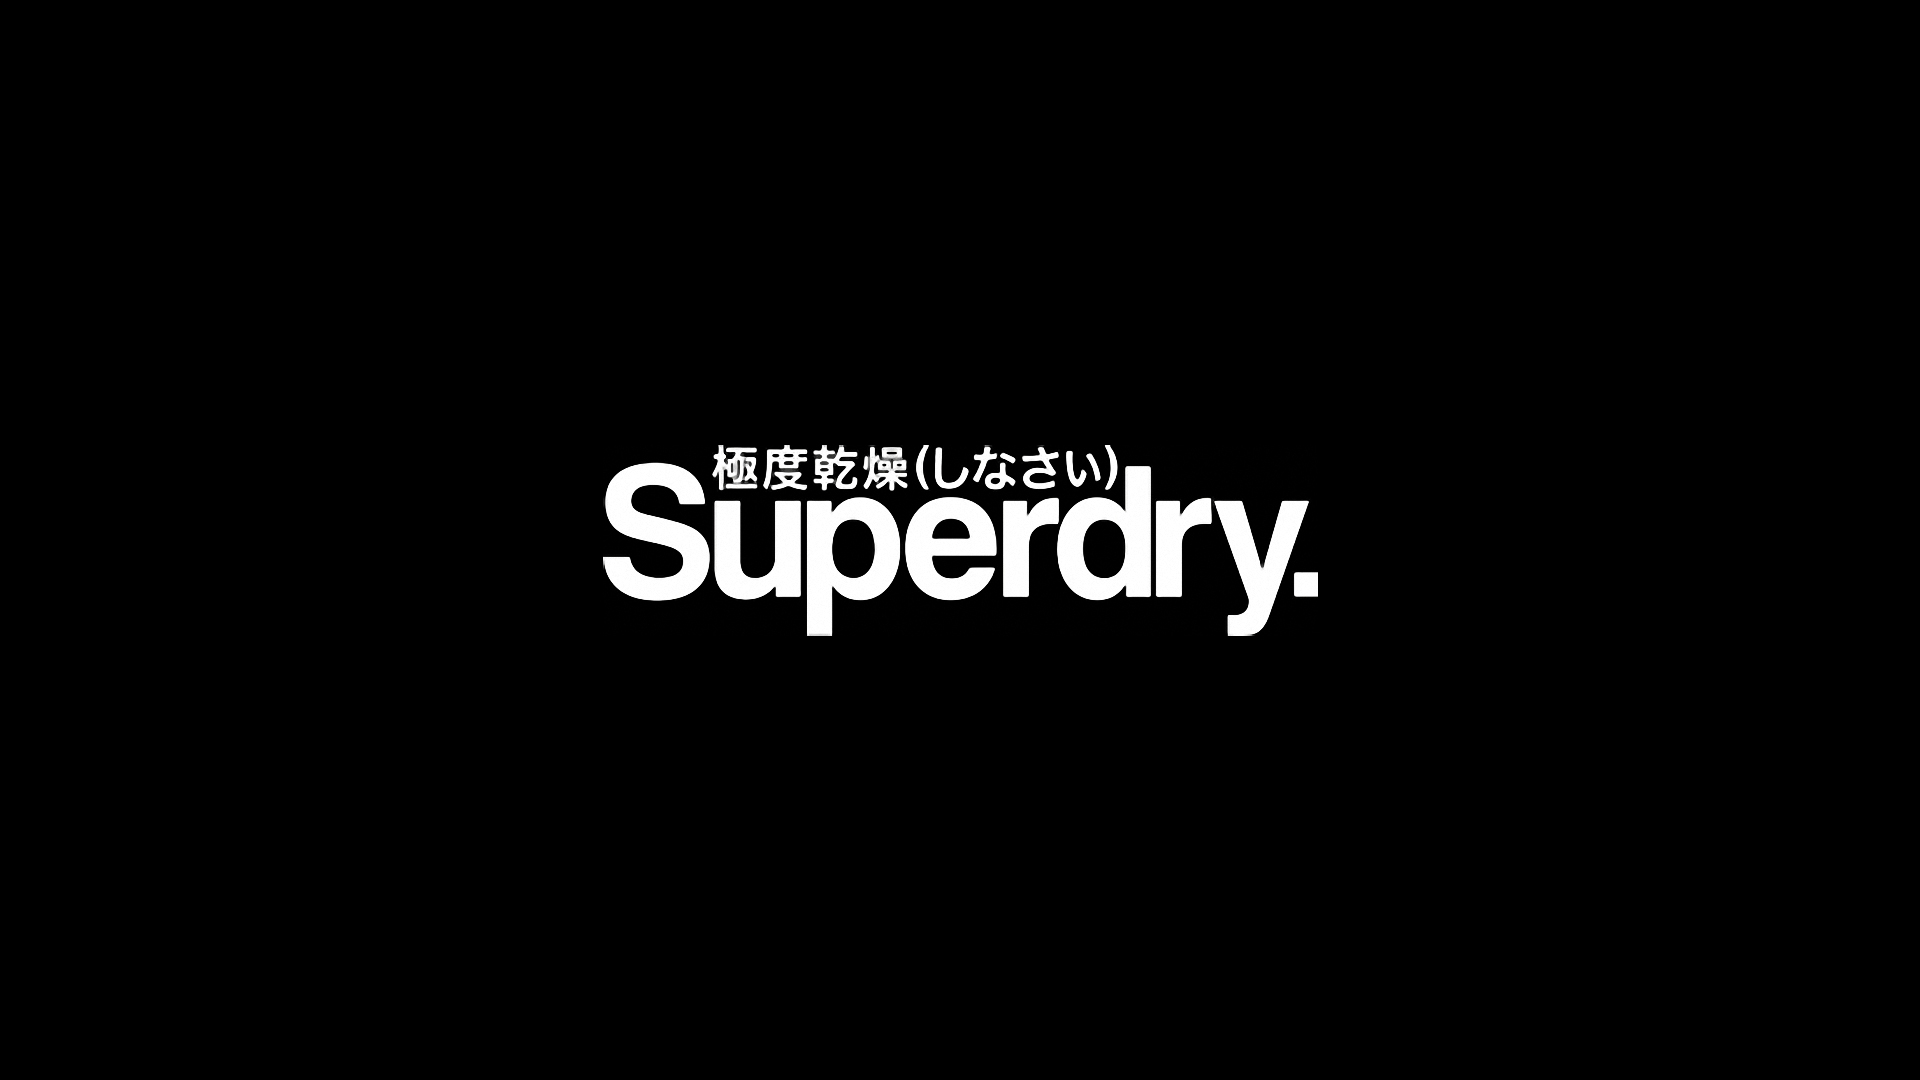 What Is Mopar >> Bargain of the Week: Superdry eBay Outlet UK - ShopandBox